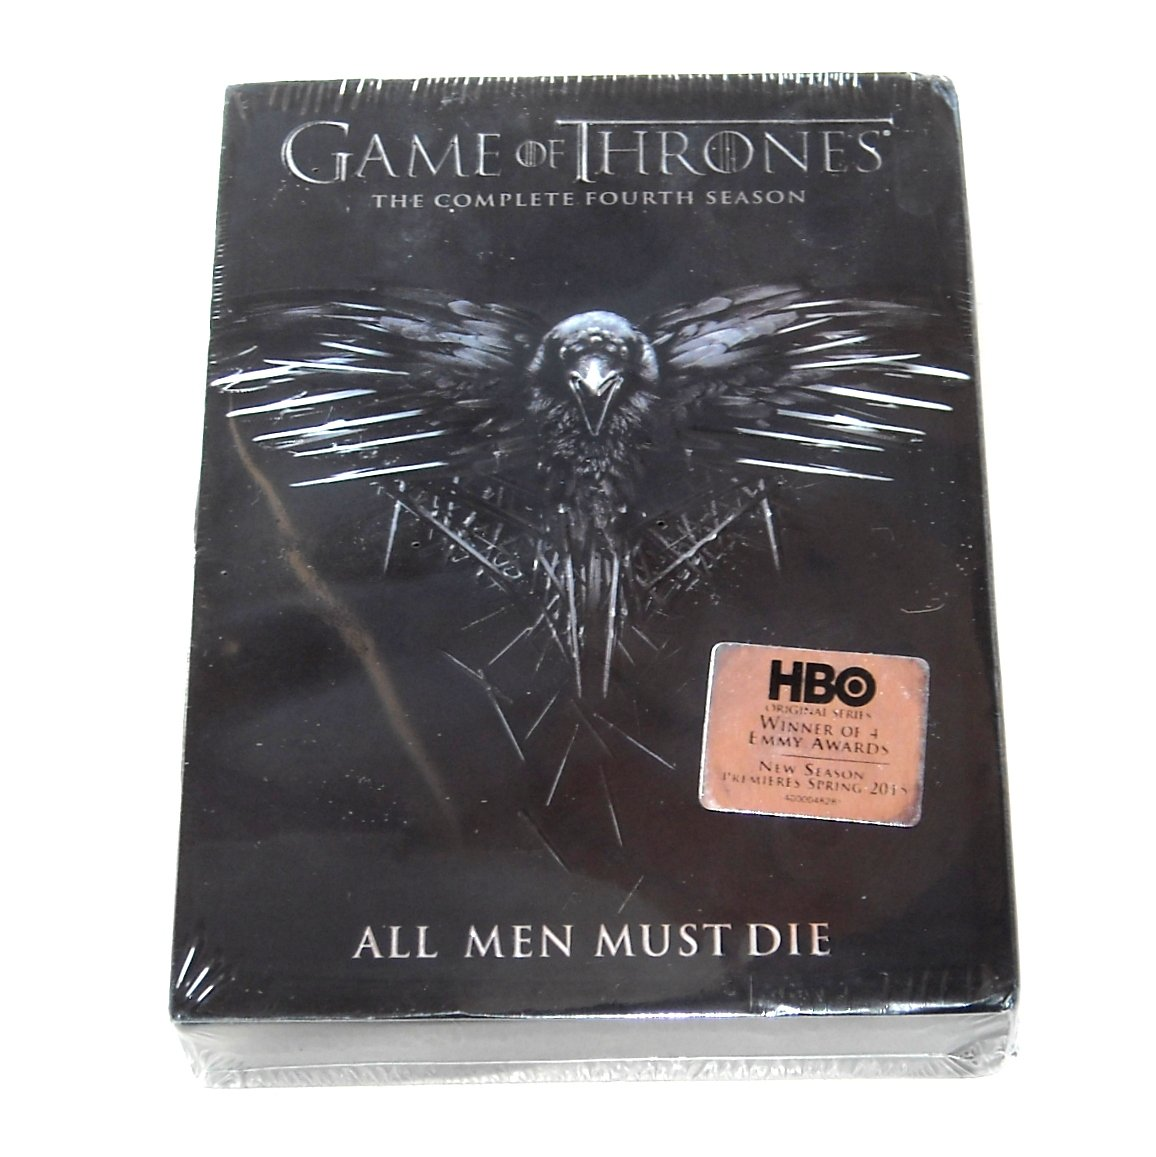 Game of Thrones HBO Complete Fourth Season DVD